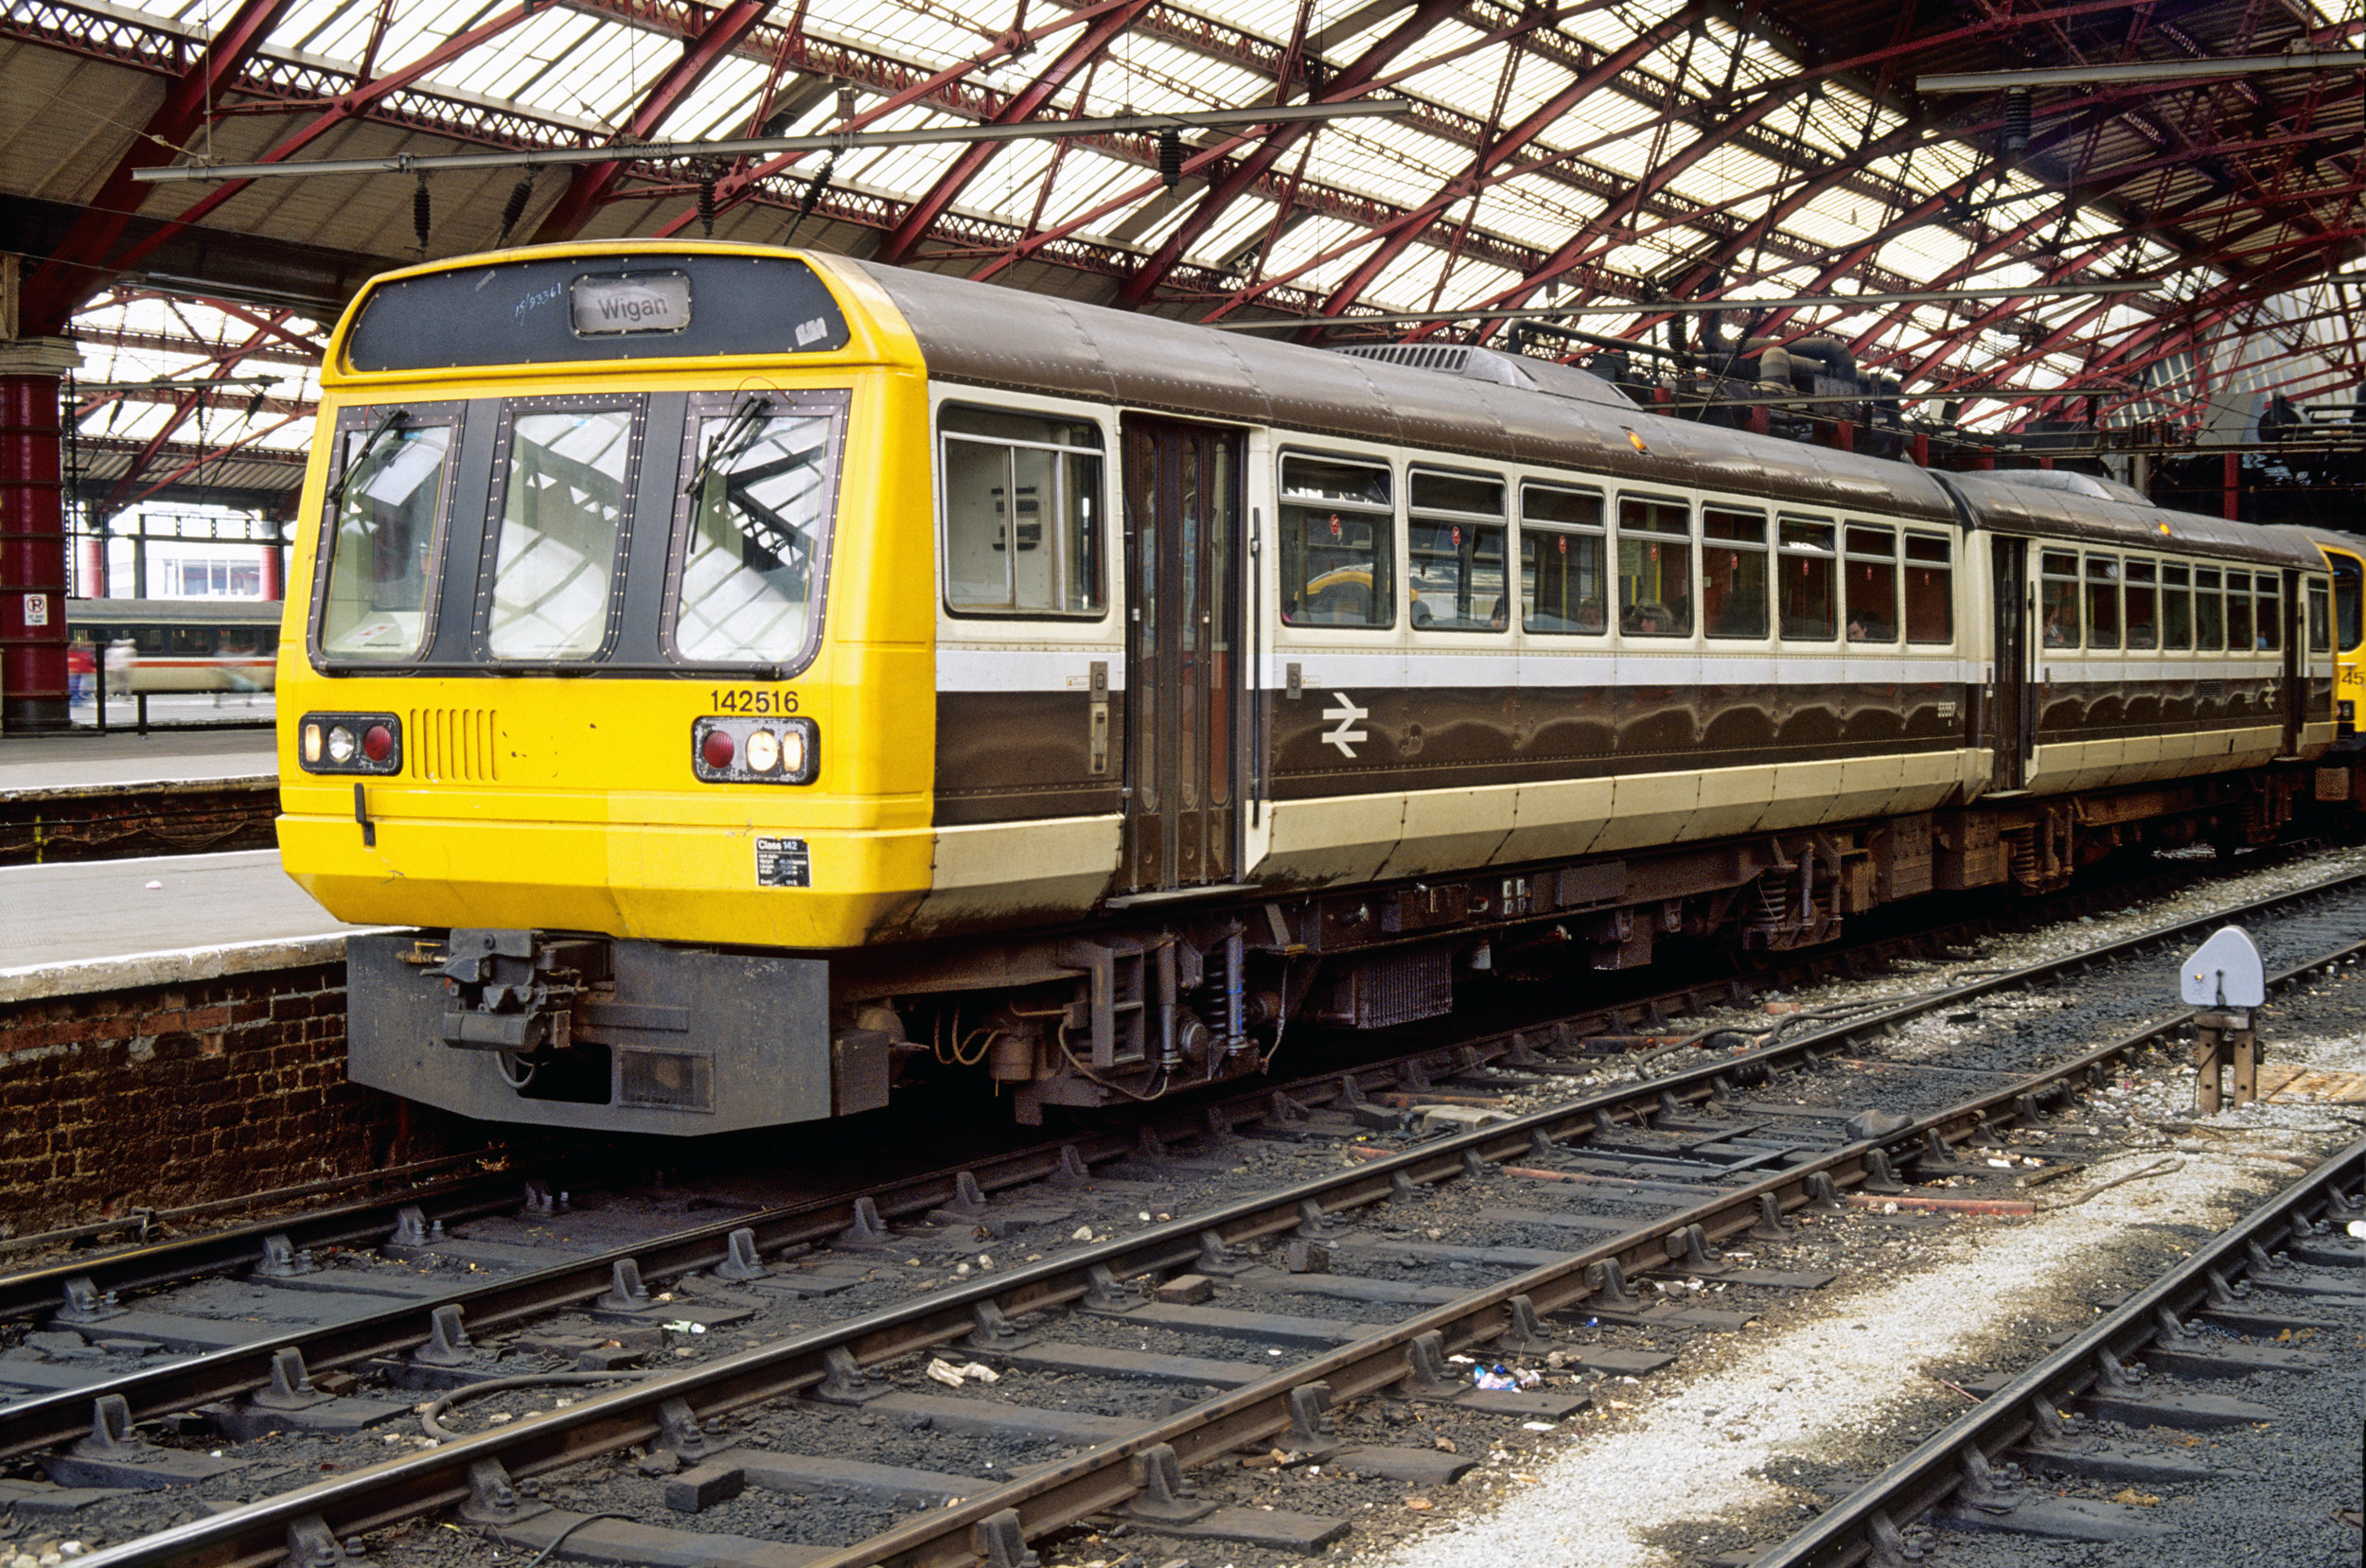 02559. 142516. lime St. 17.6.91.